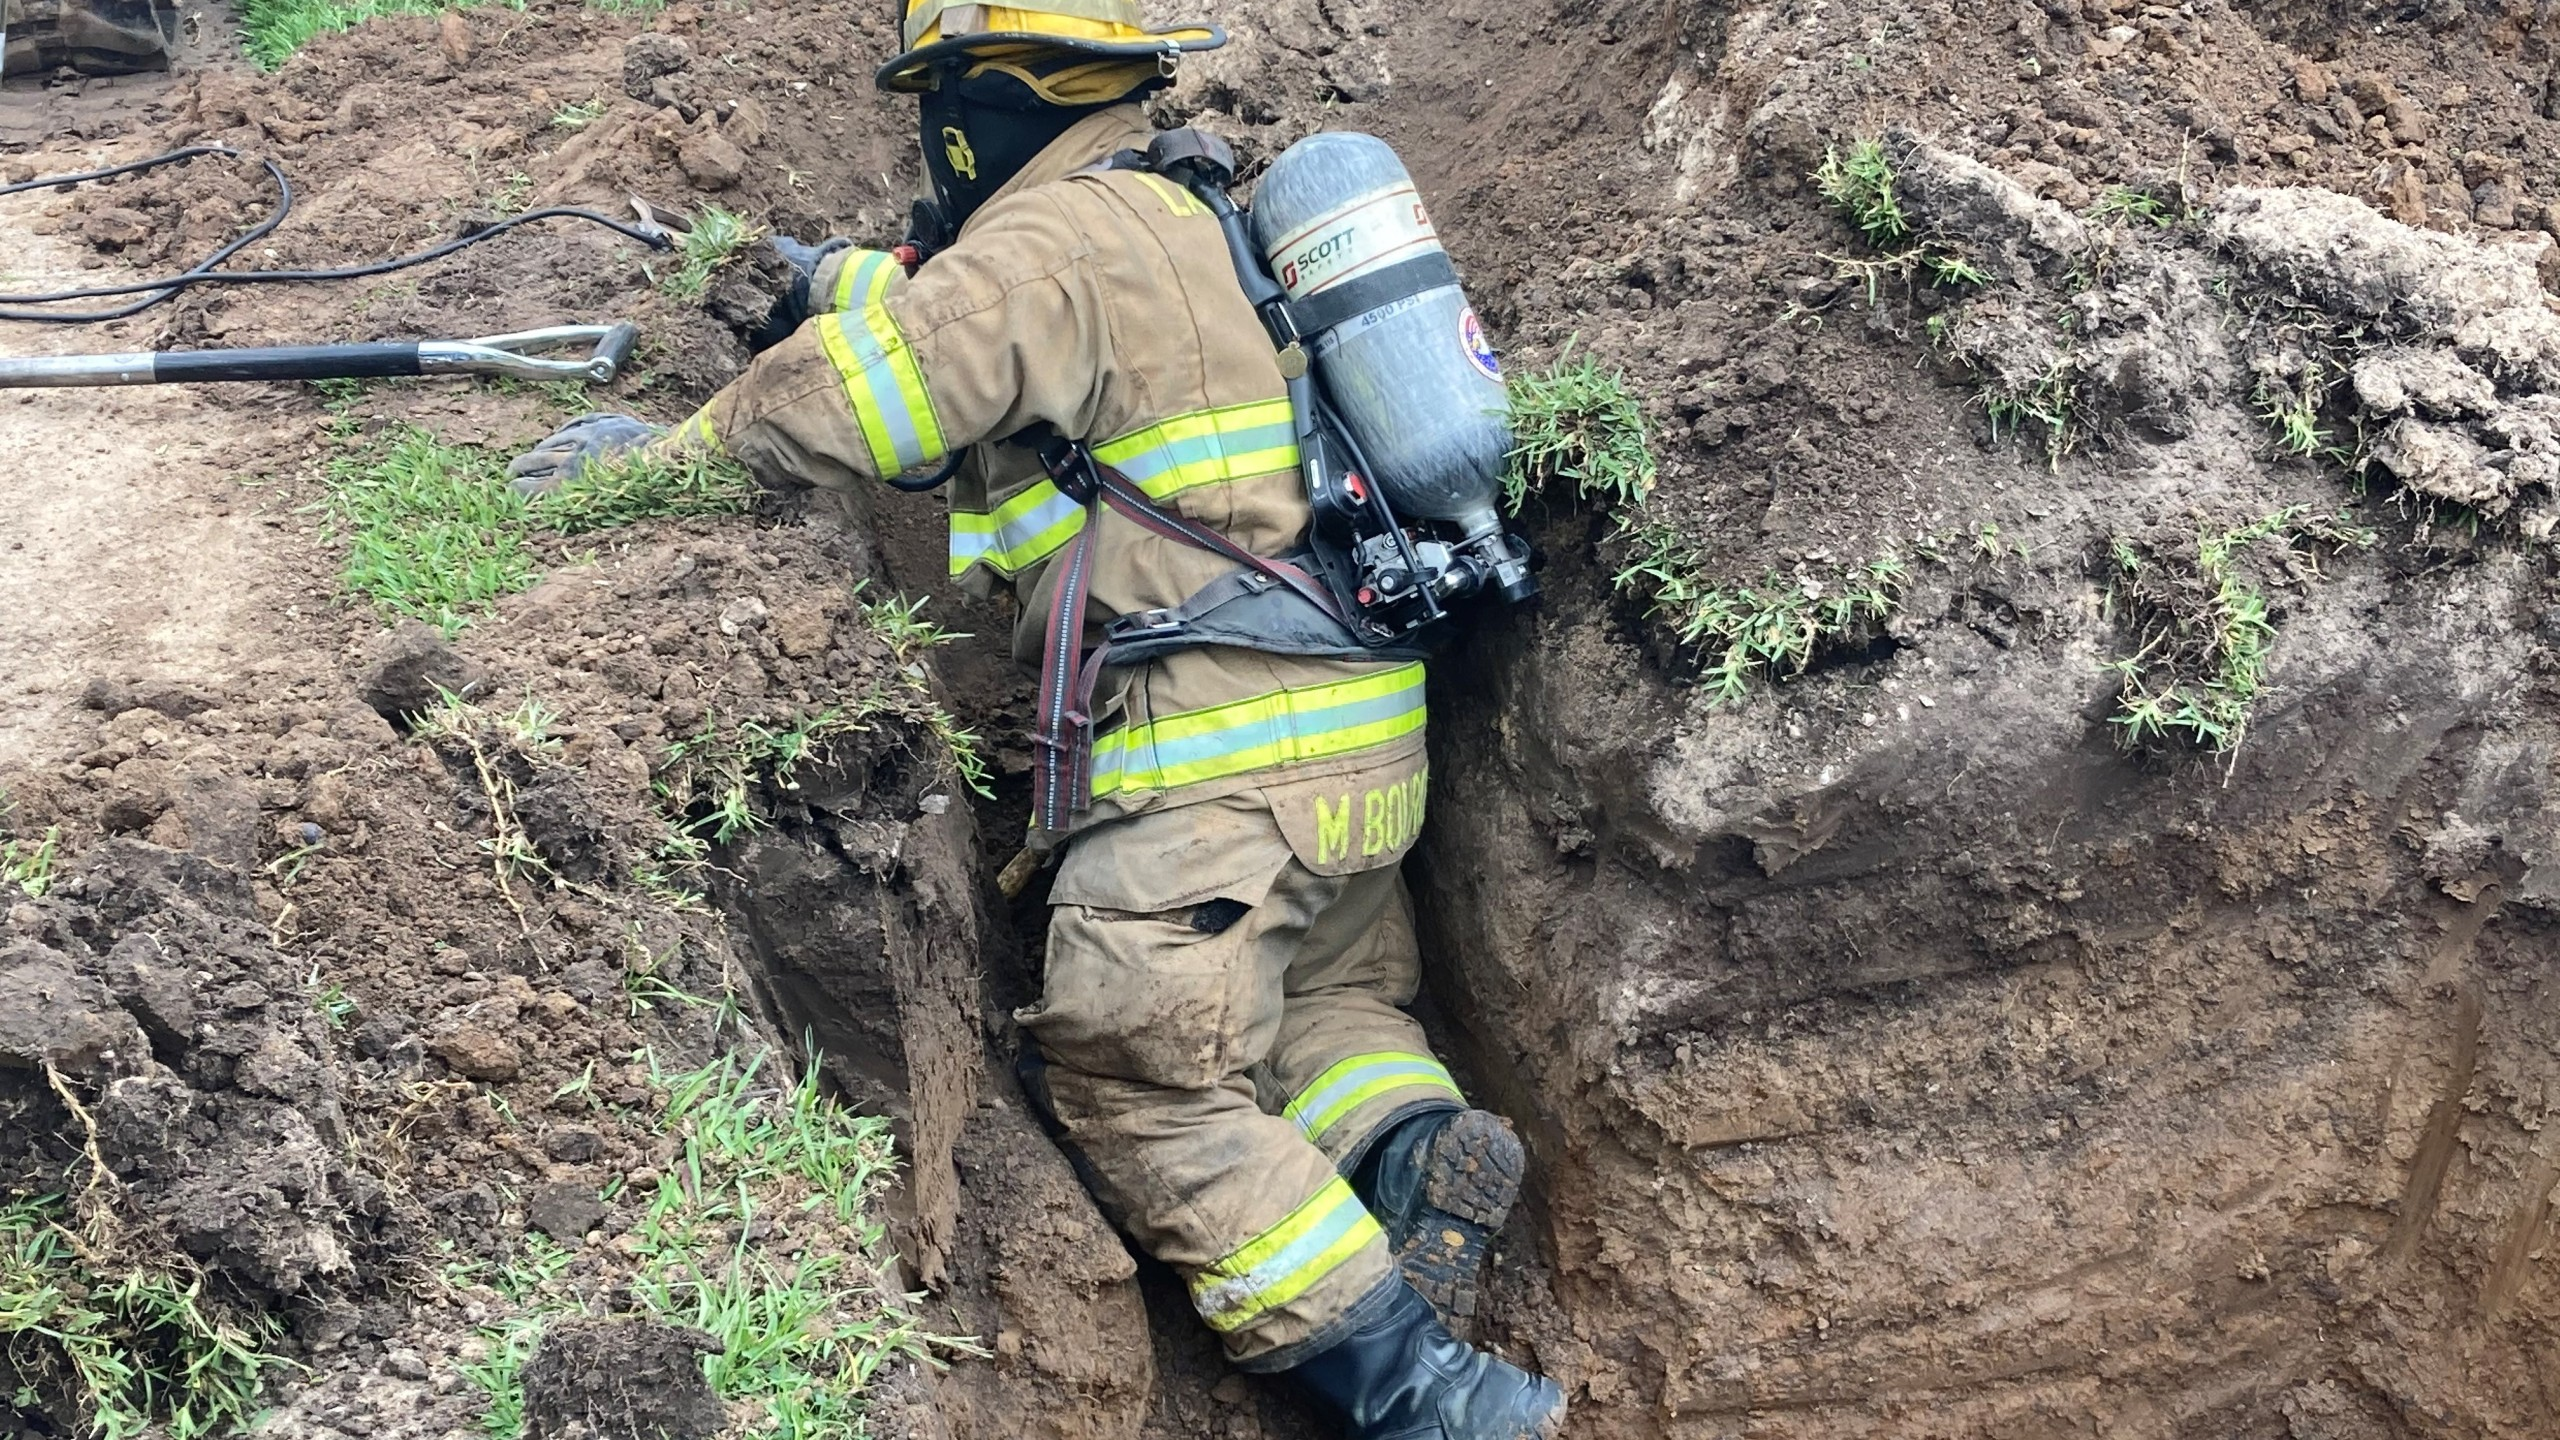 Firefighter in hole placing a temporary patch on the gas leak. (Alton Trahan, Lafayette Fire Department)